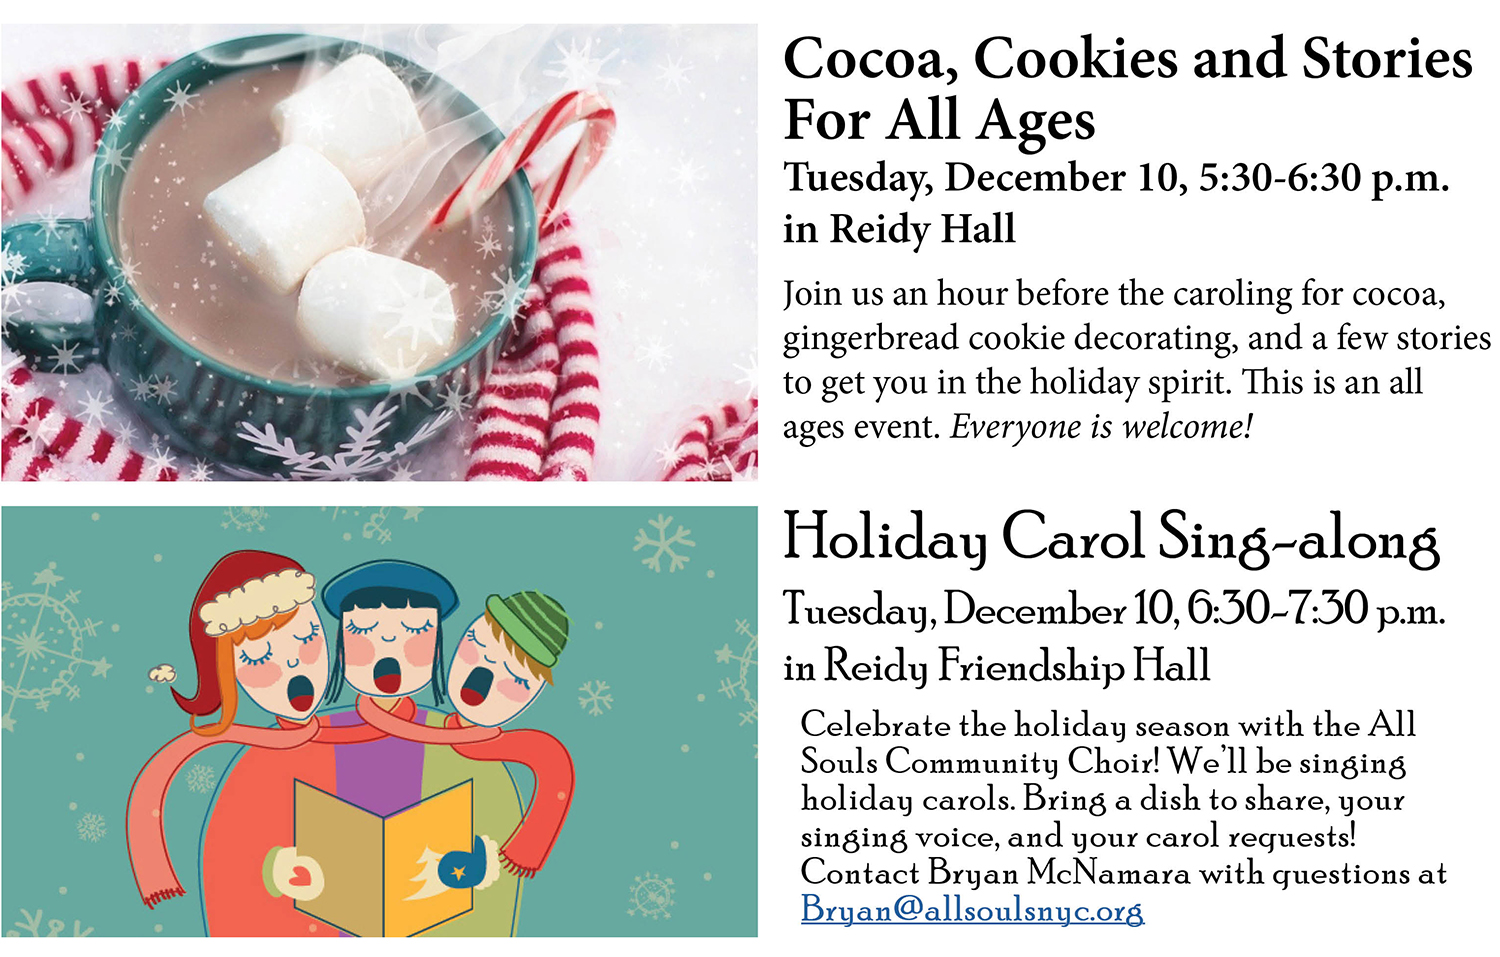 Cocoa, Cookies and Stories For All Ages Tuesday, December 10, 5:30-6:30 p.m. in Reidy Hall Join us an hour before the caroling for cocoa, gingerbread cookie decorating, and a few stories to get you in the holiday spirit. This is an all ages event. Everyone is welcome! Holiday Carol Sing-along Tuesday, December 10, 6:30-7:30 p.m. in Reidy Friendship Hall Celebrate the holiday season with the All Souls Community Choir! We'll be singing holiday carols. Bring a dish to share, your singing voice, and your carol requests! Contact Bryan McNamara with questions at Bryan@allsoulsnyc.org.